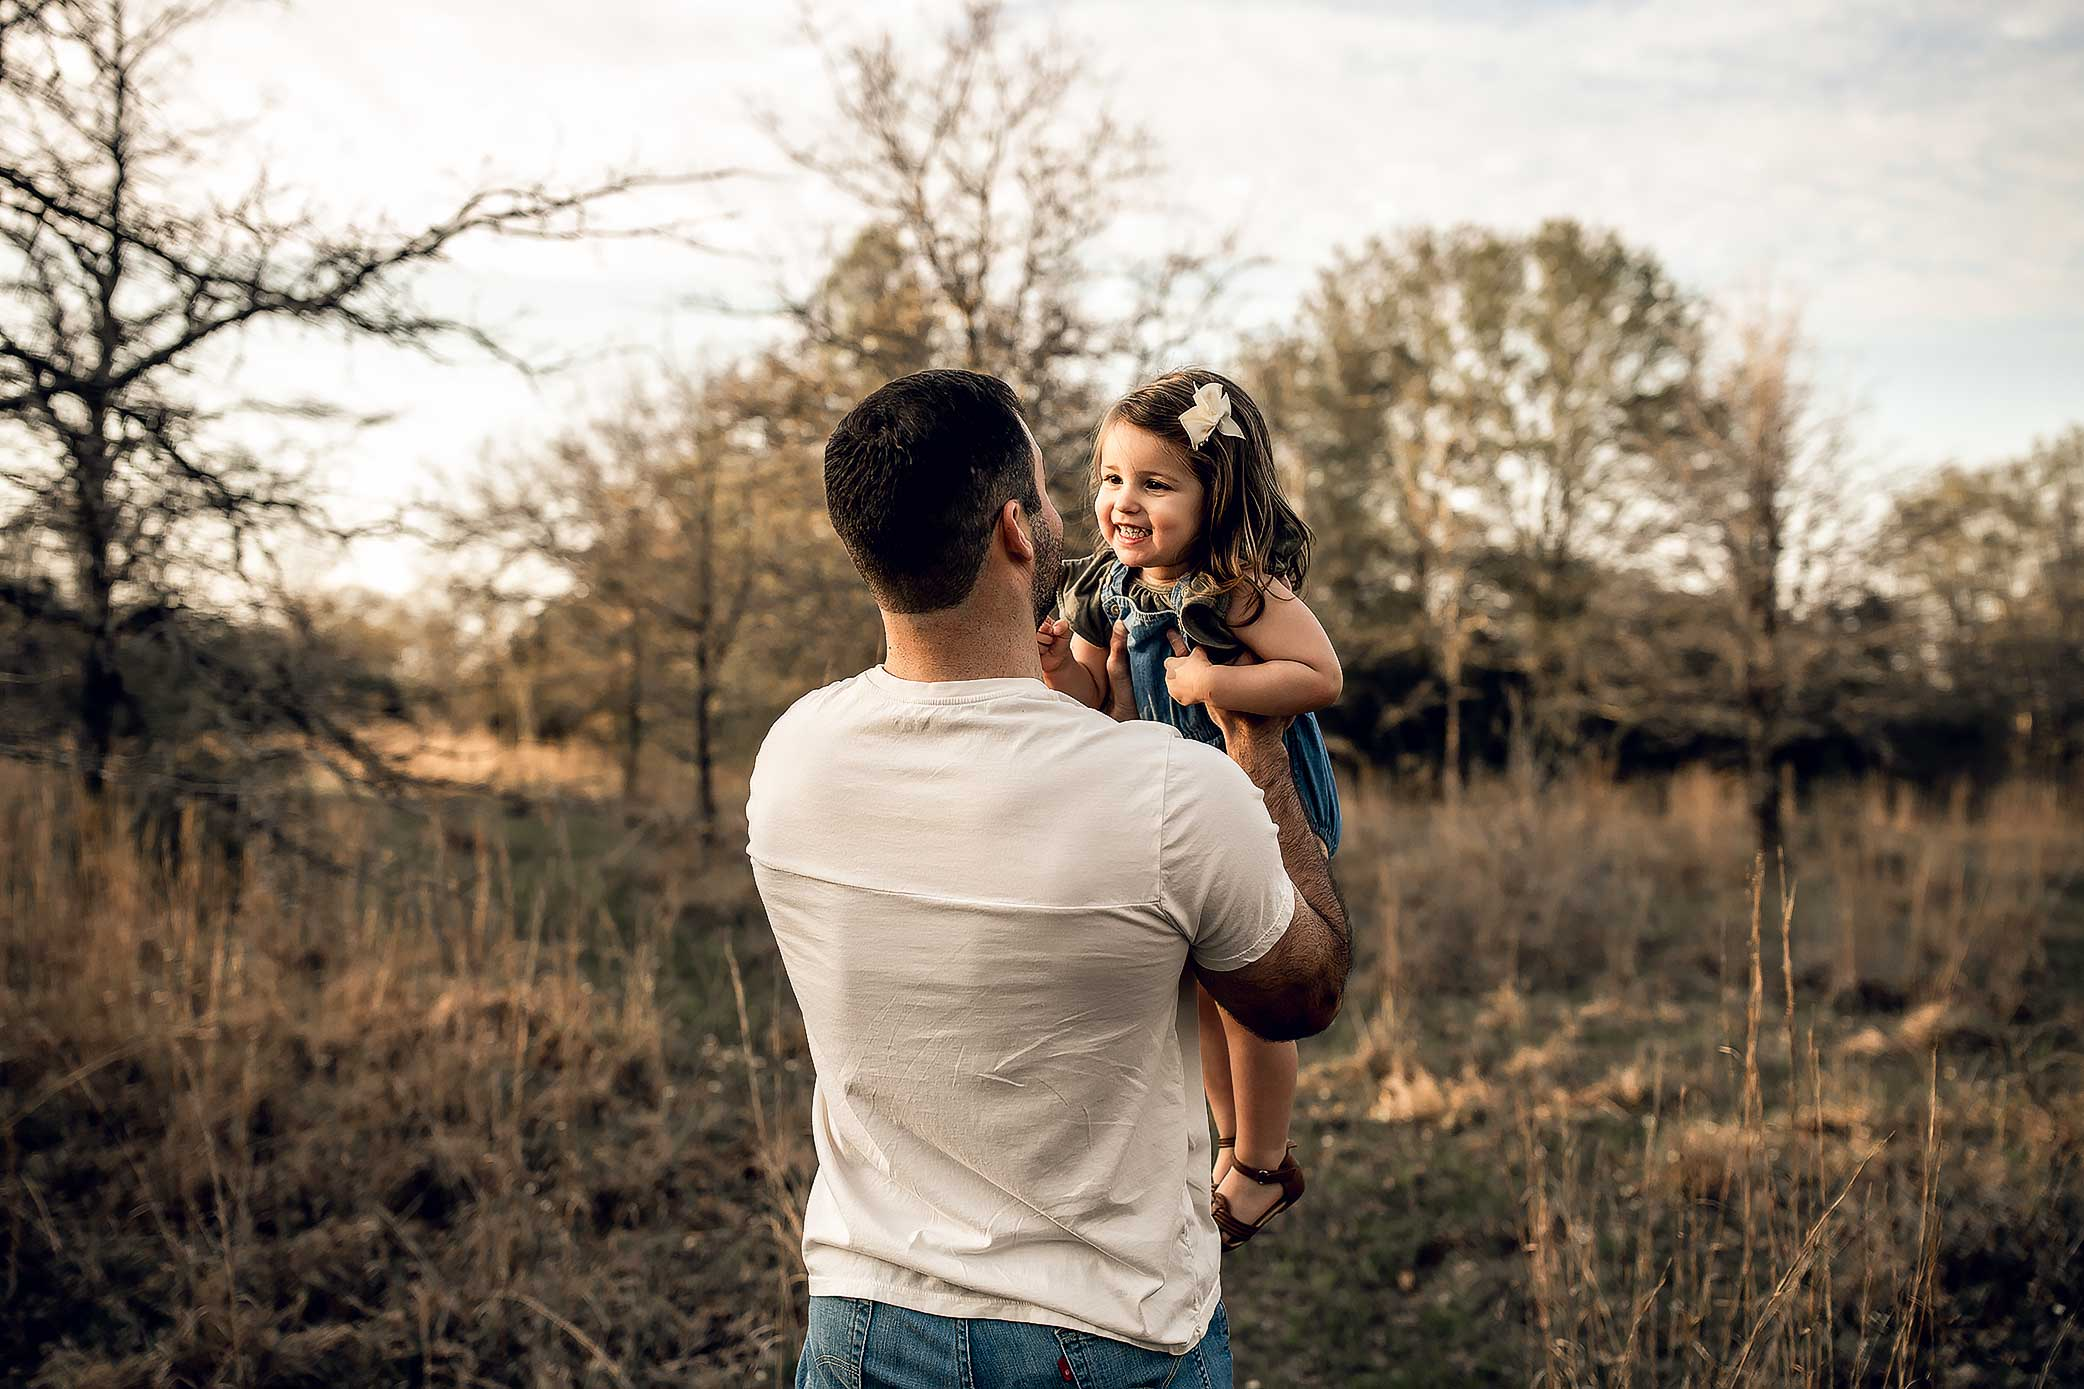 shelby-schiller-photography-sunset-family-pictures-spring-2019-32.jpg